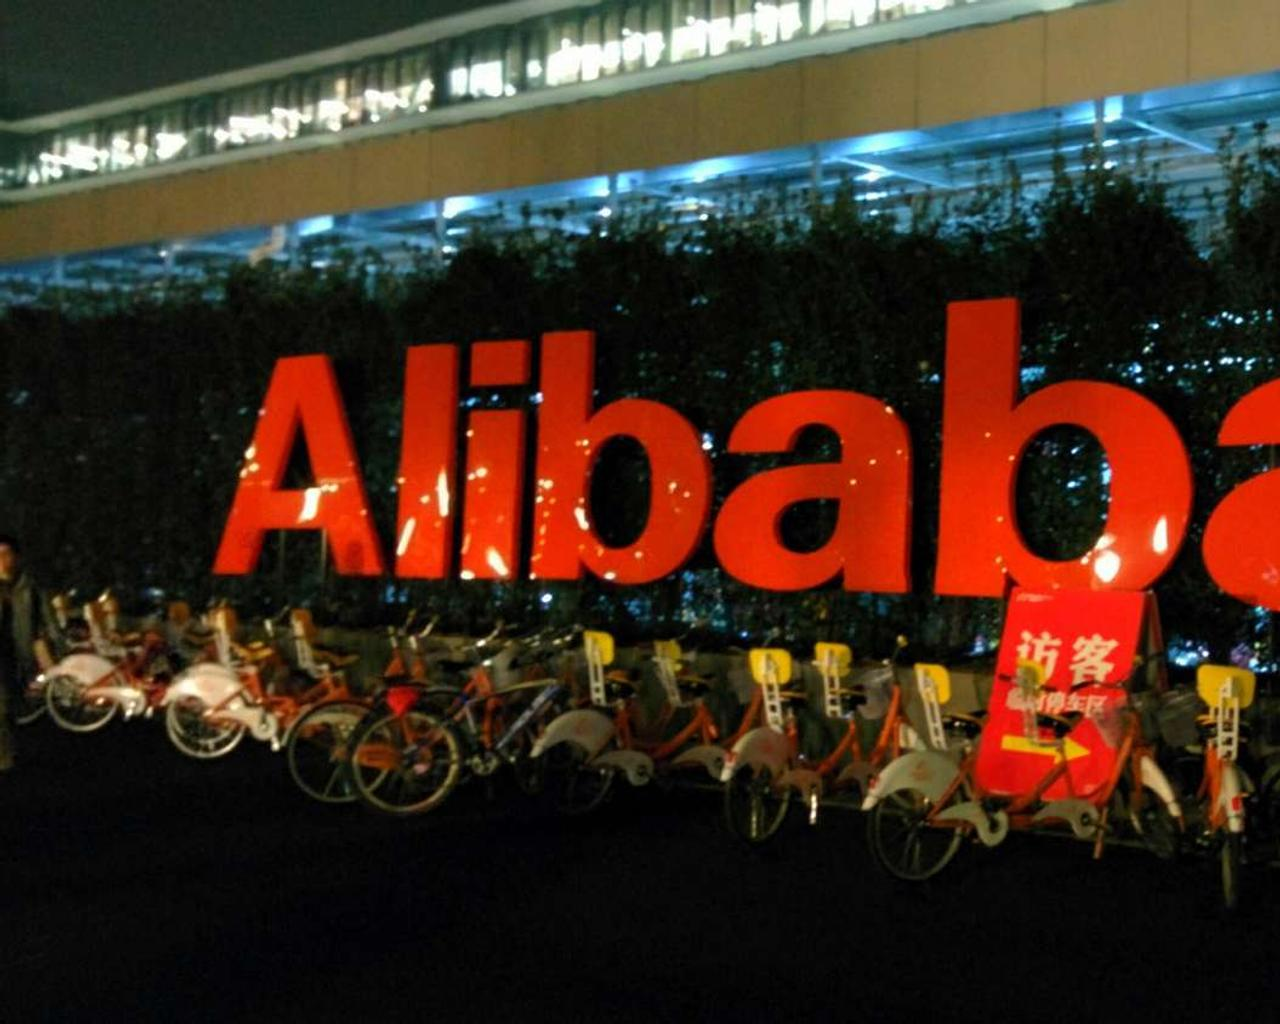 Alibaba is fined a record $2.75 billion by China for anti-monopoly violations.